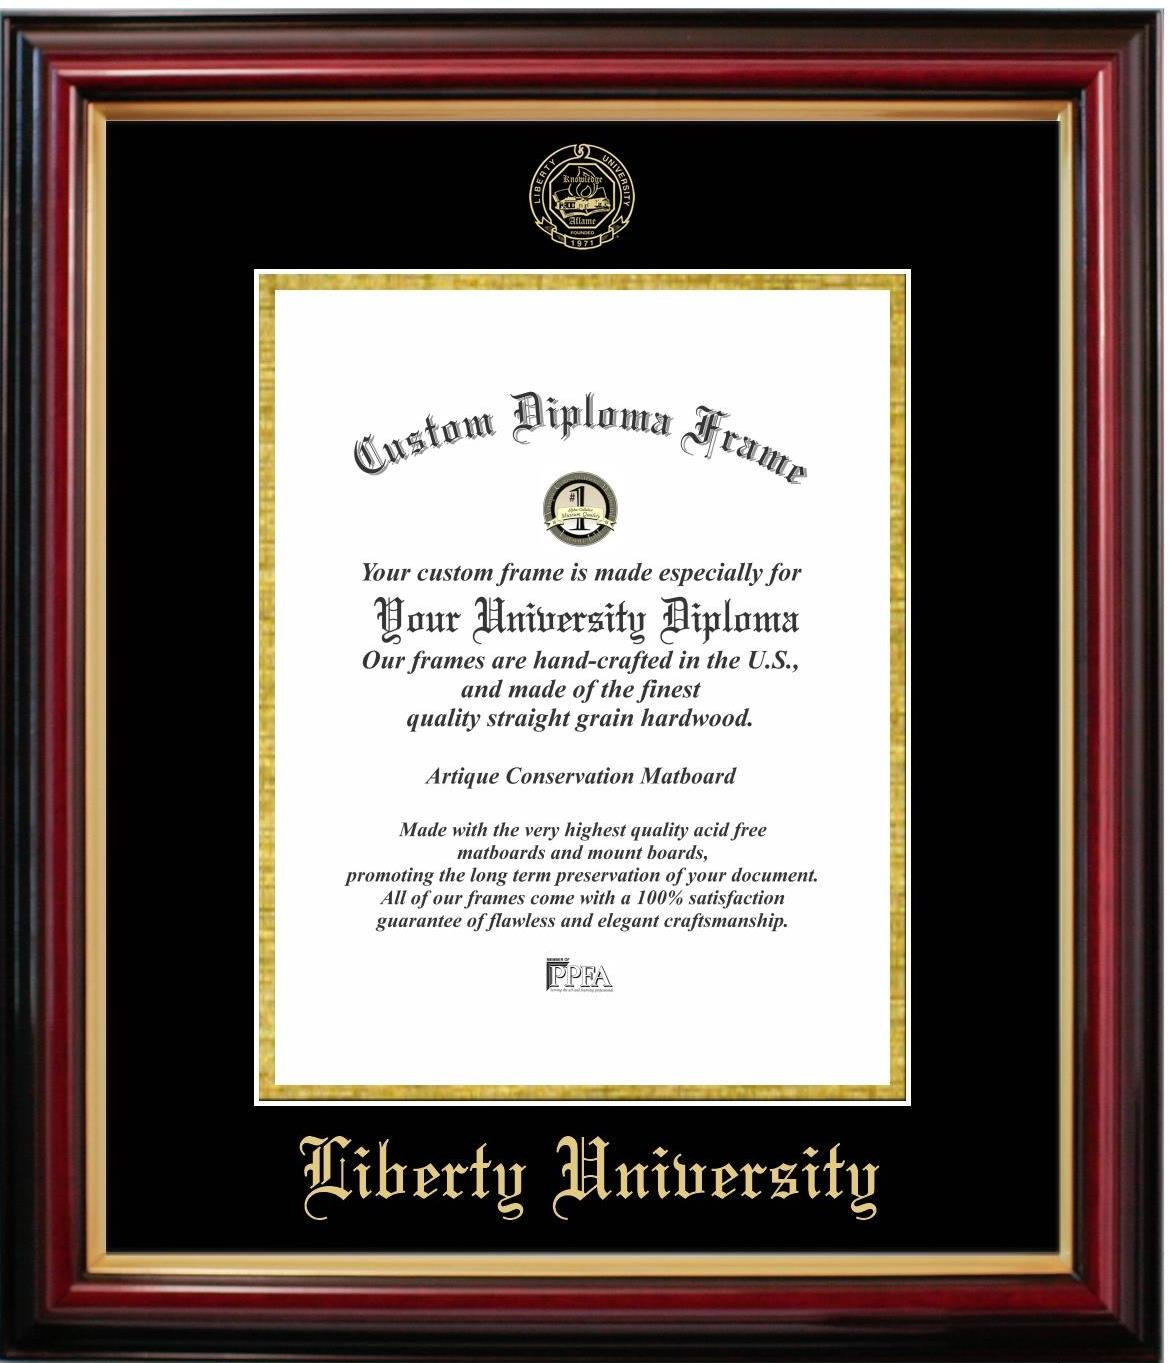 Liberty University Affordable Diploma Frame (14 X 17) Vertical by Diploma Frame Deals